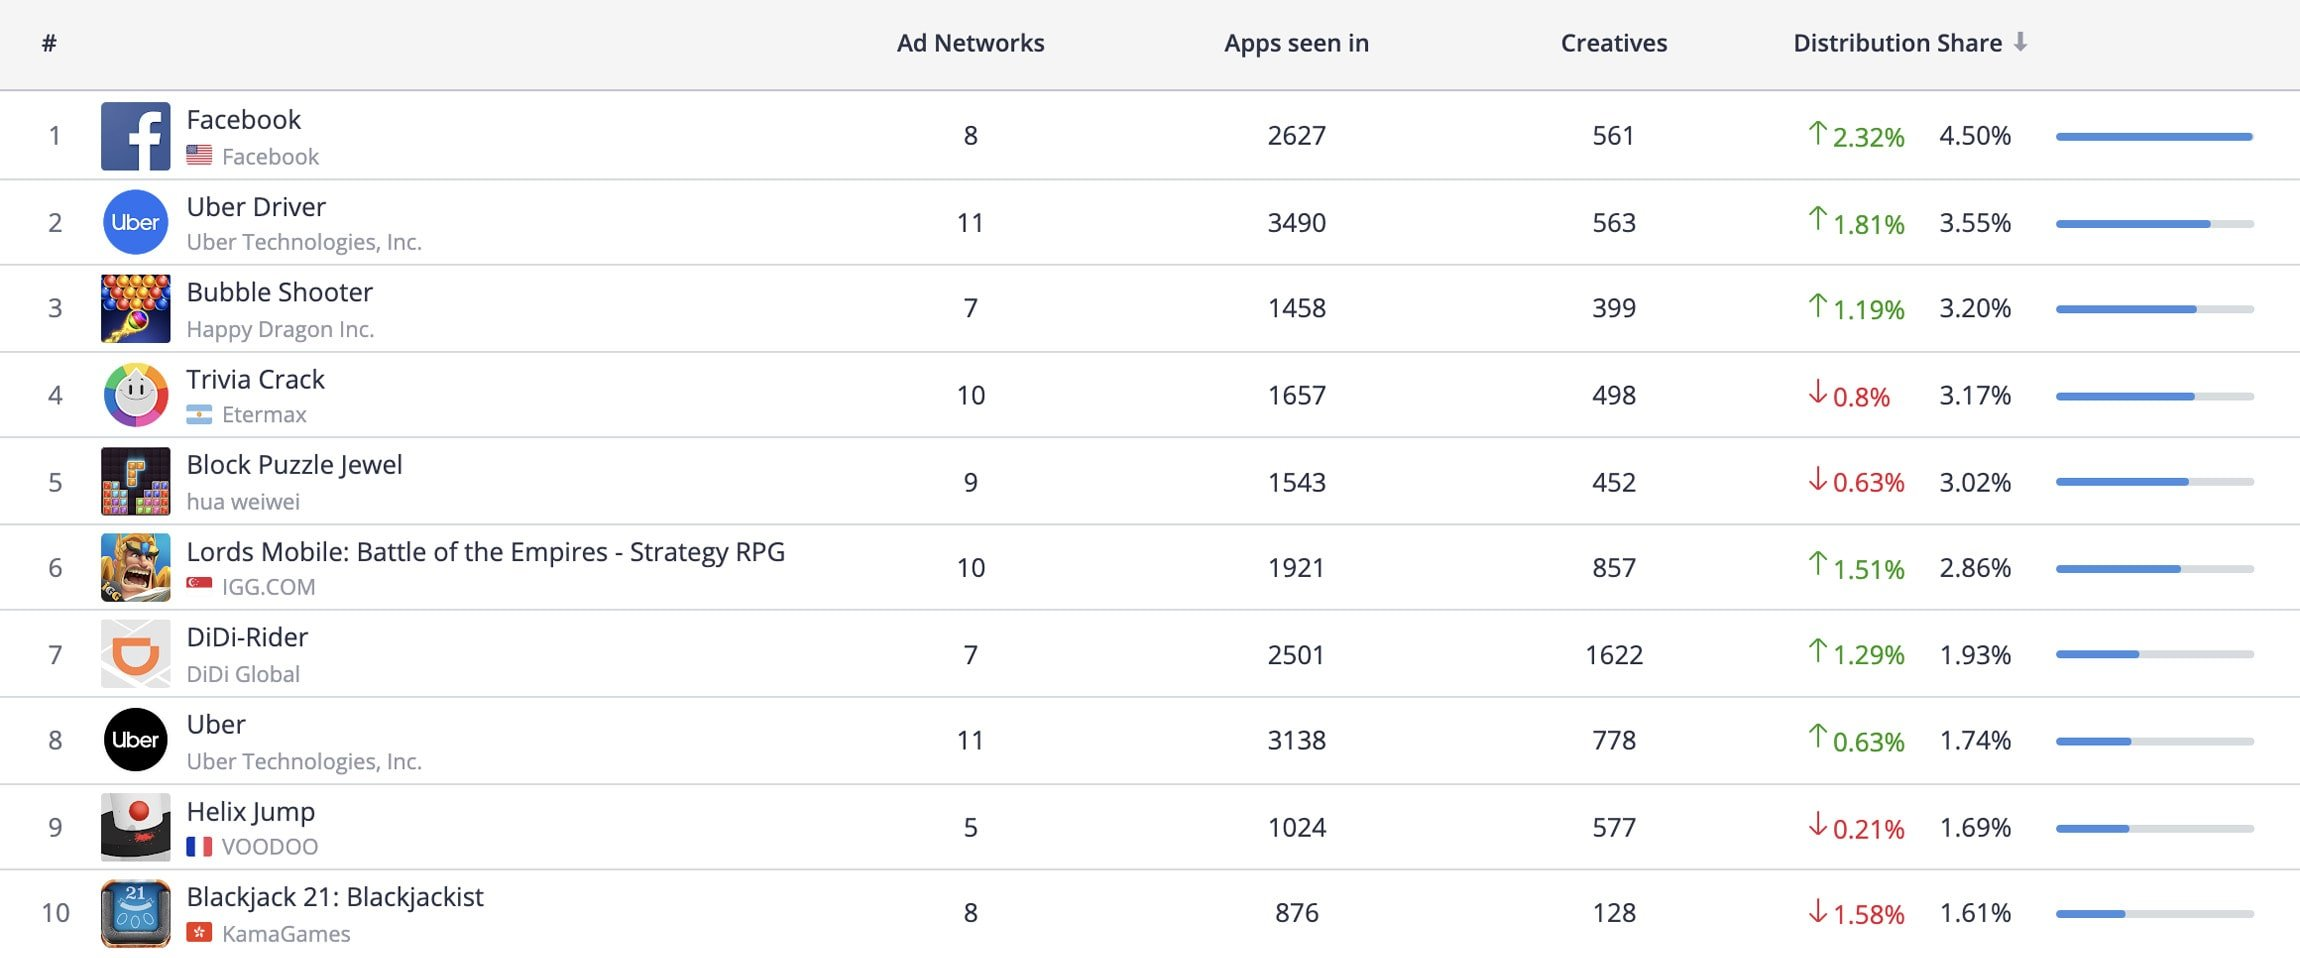 Top 10 Advertisers, Android